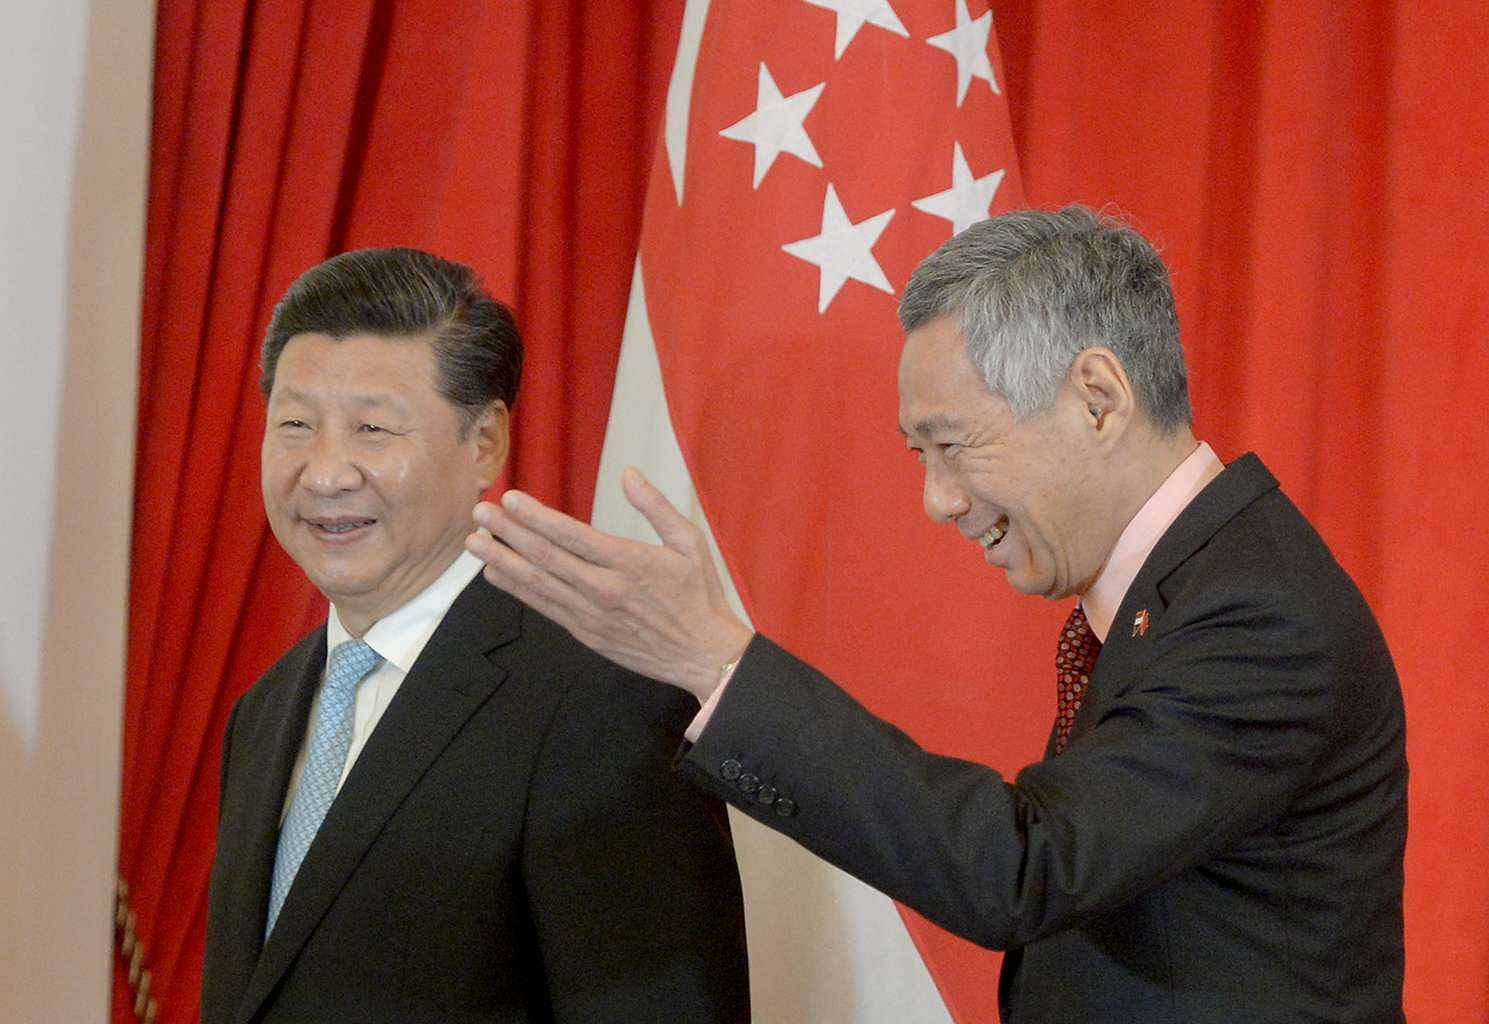 Singapore and China hold 'candid and in-depth' discussions during Xi  Jinping's visit, Singapore News & Top Stories - The Straits Times